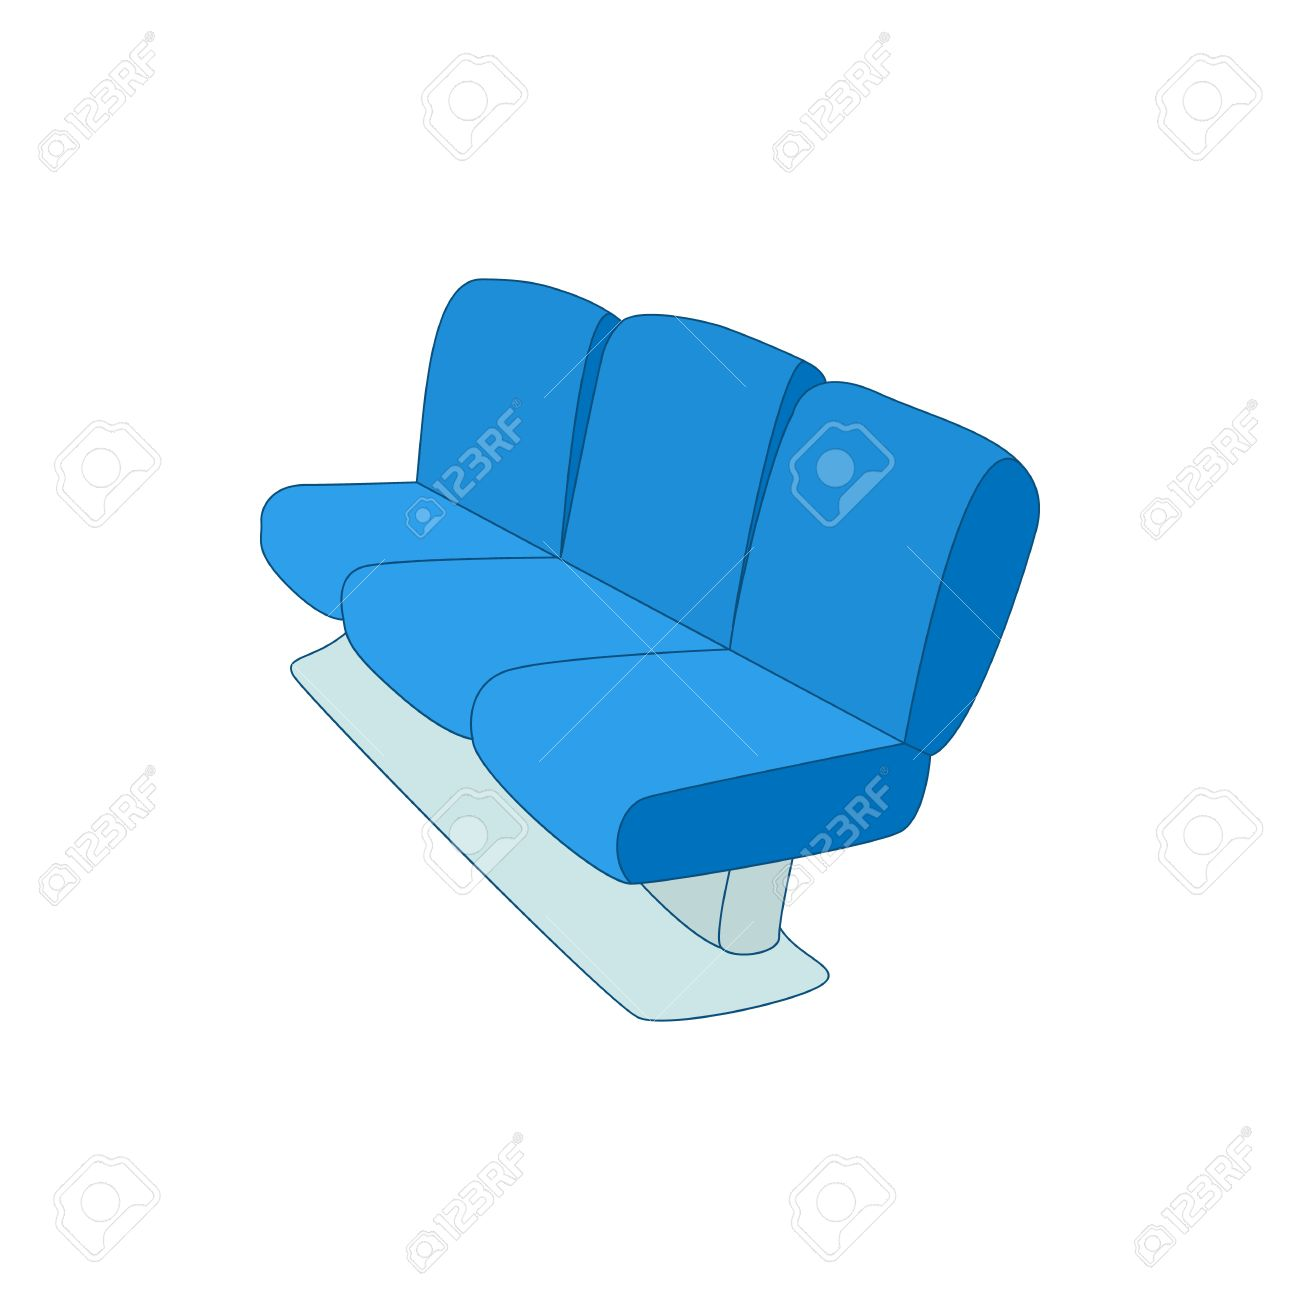 Waiting Room Chairs Icon - Waiting area blue airport seats icon in cartoon style on a white background